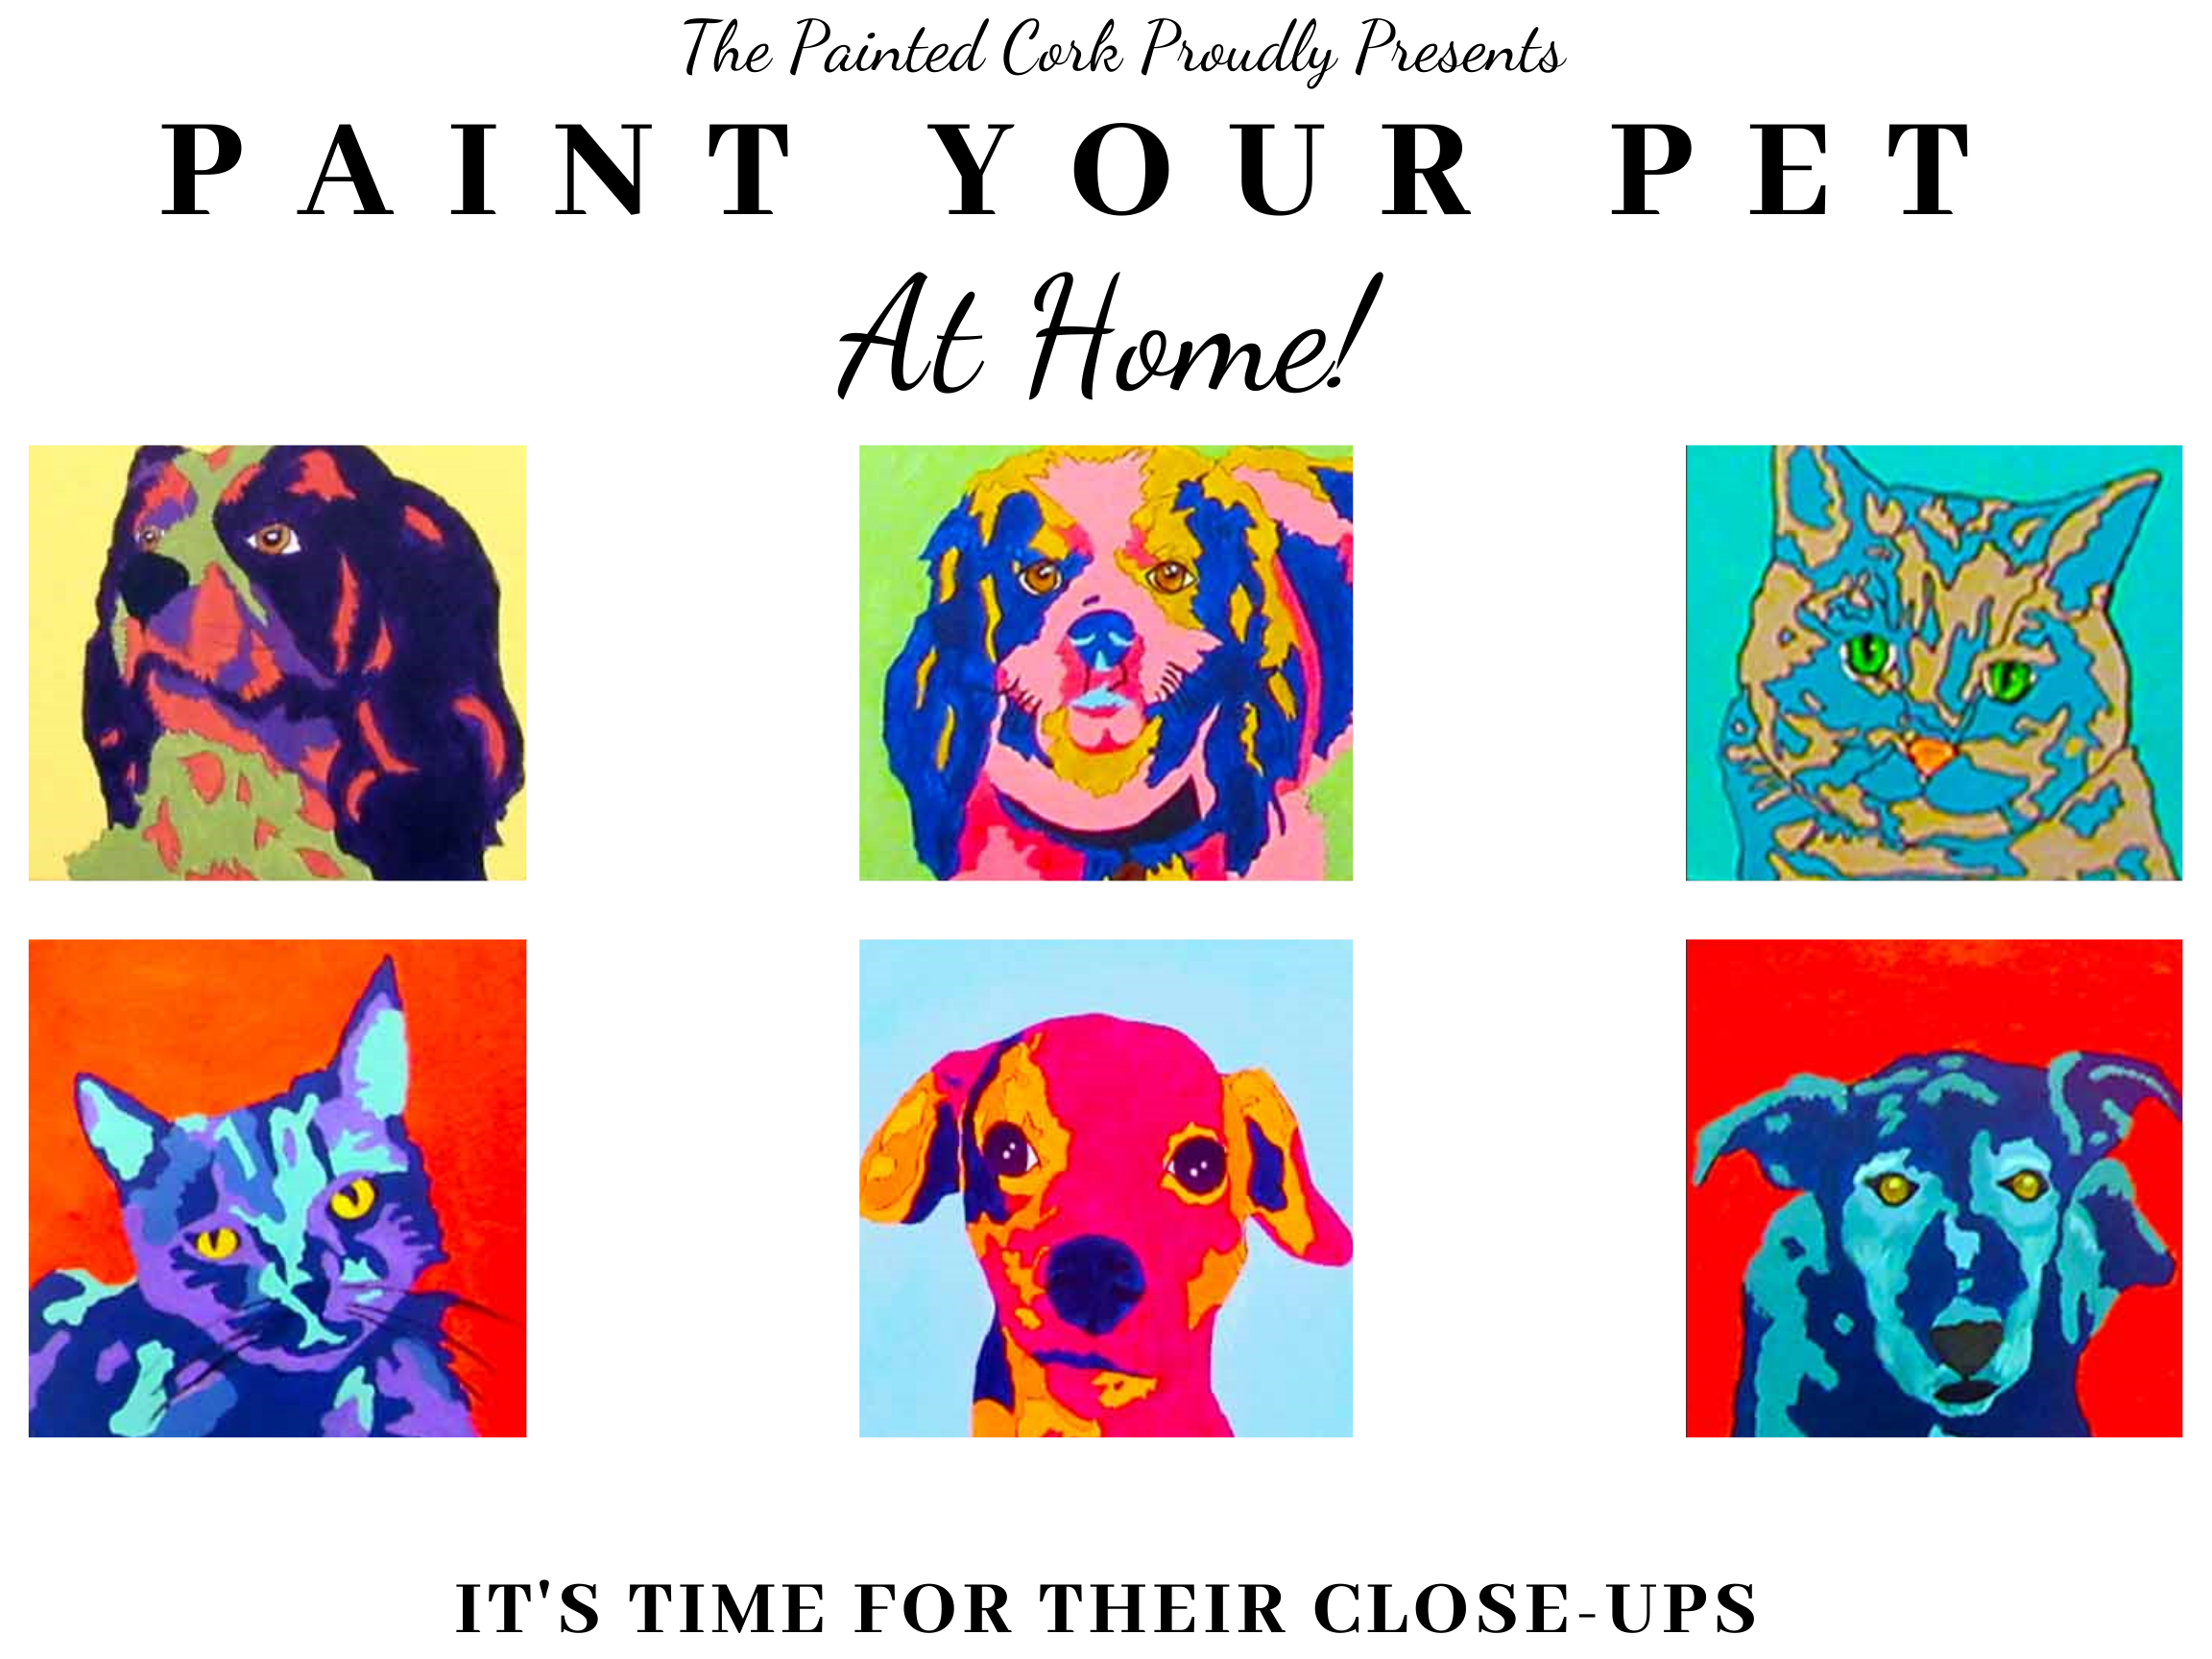 The Painted Cork Presents Paint Your Pet - AT HOME!